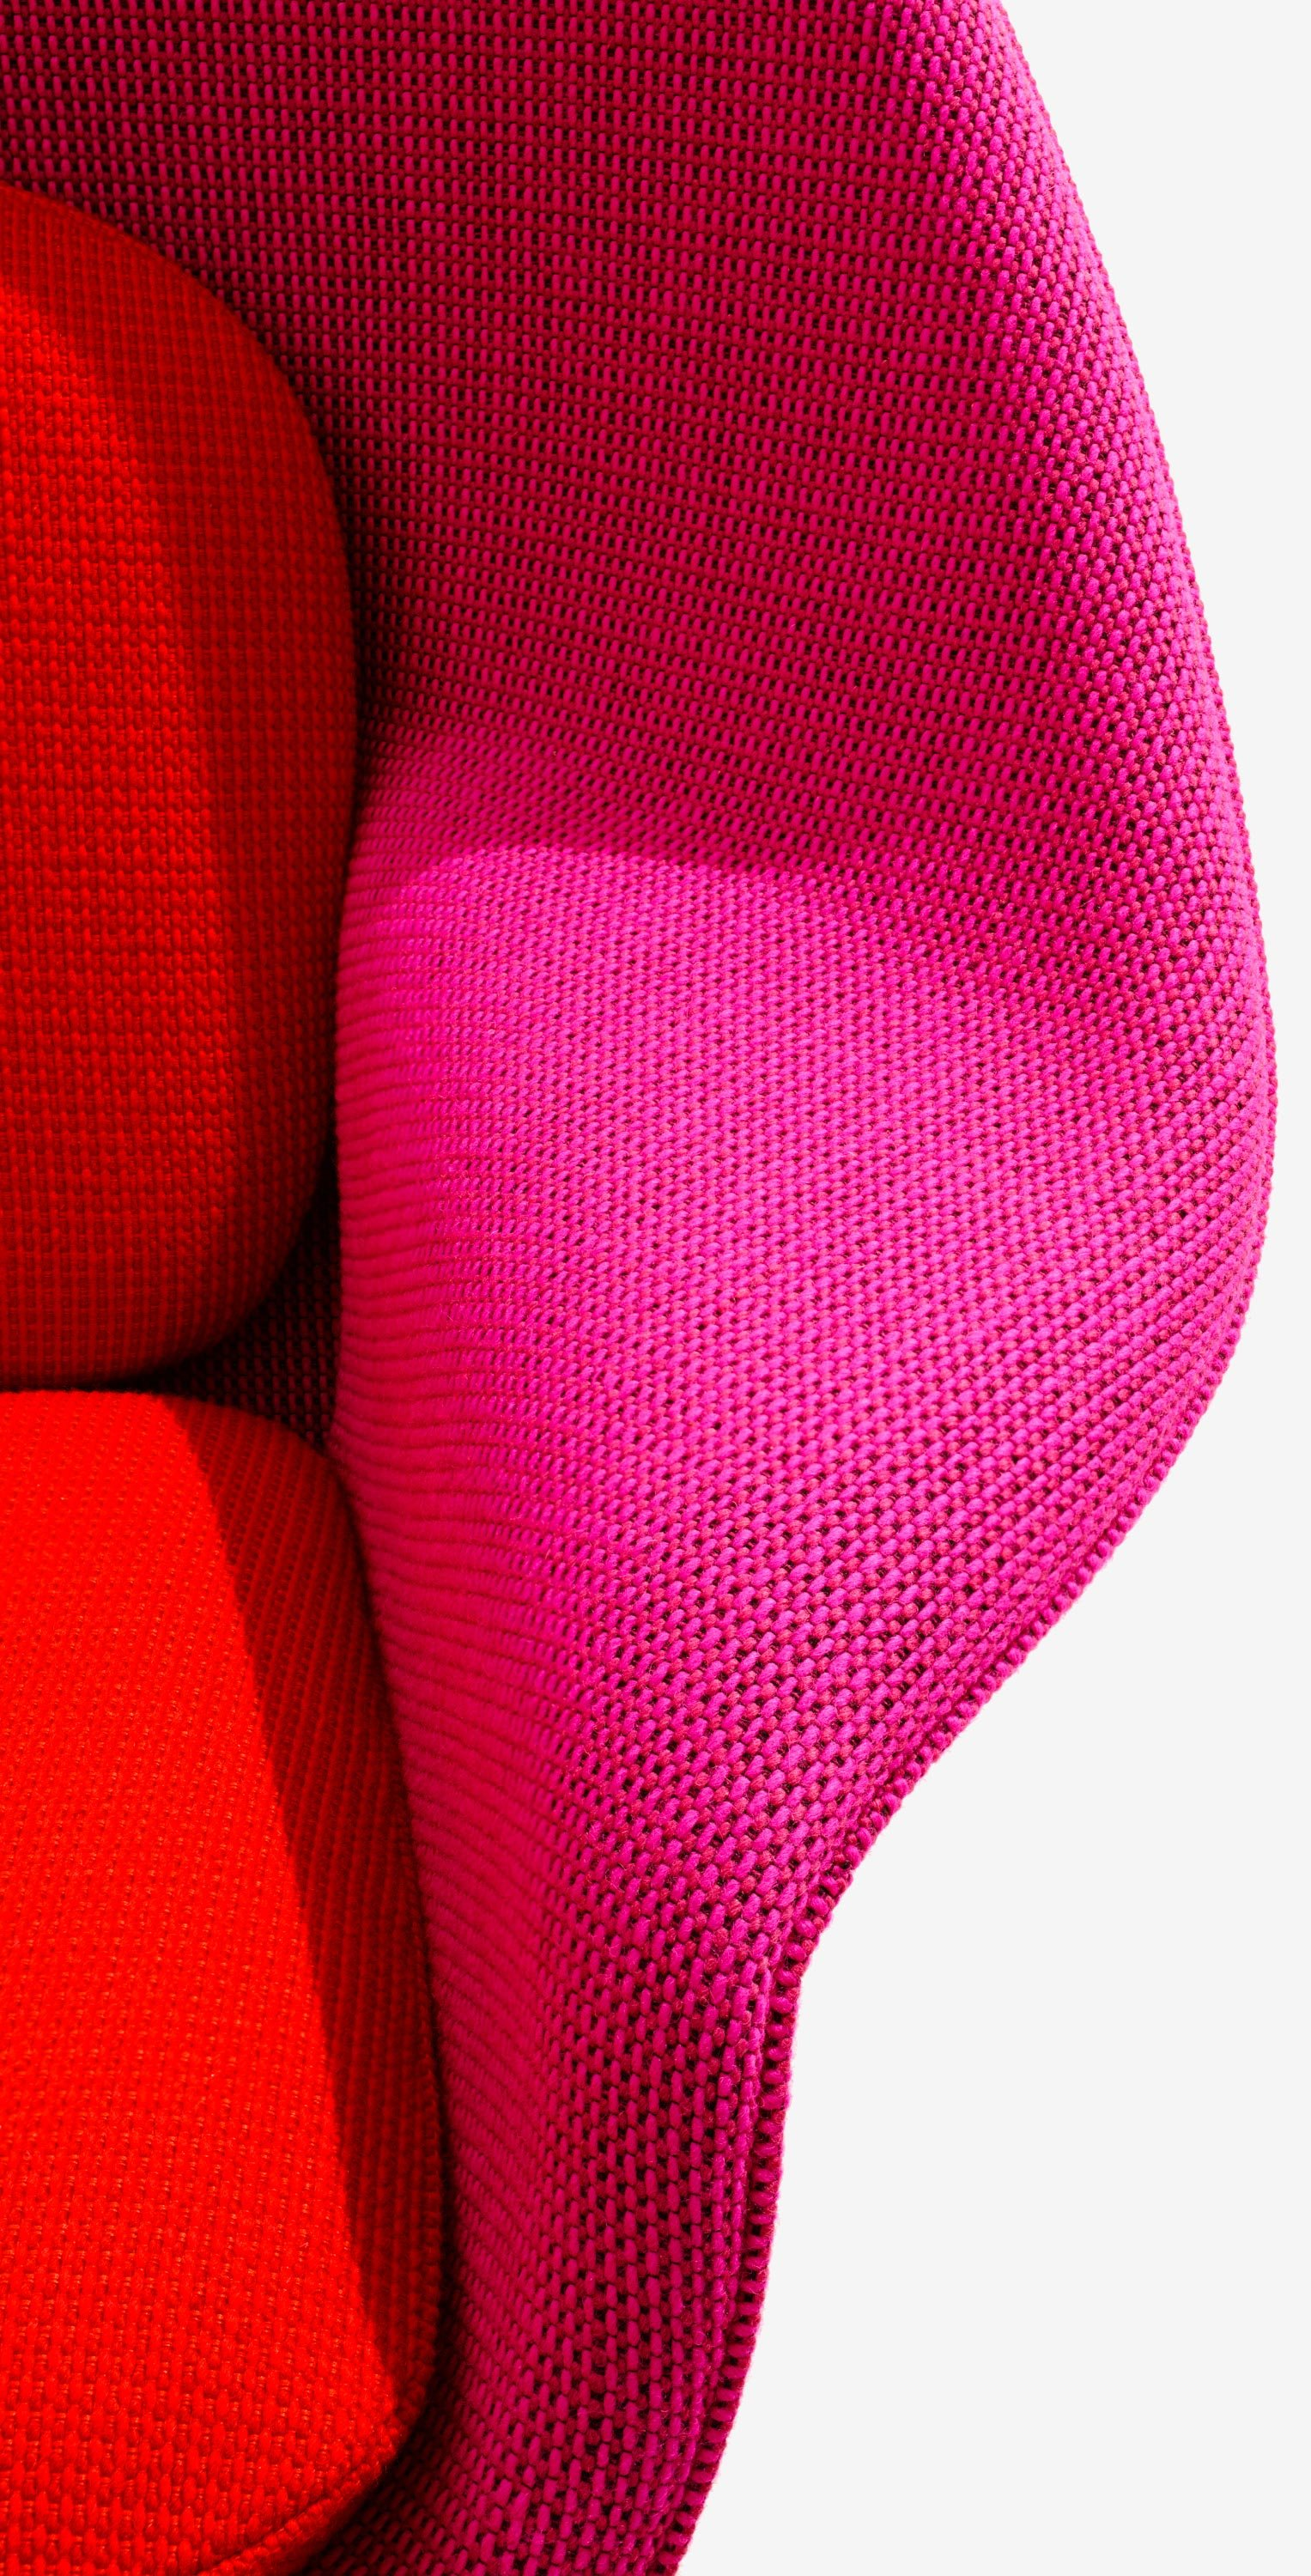 Womb Chair Side Detail Image